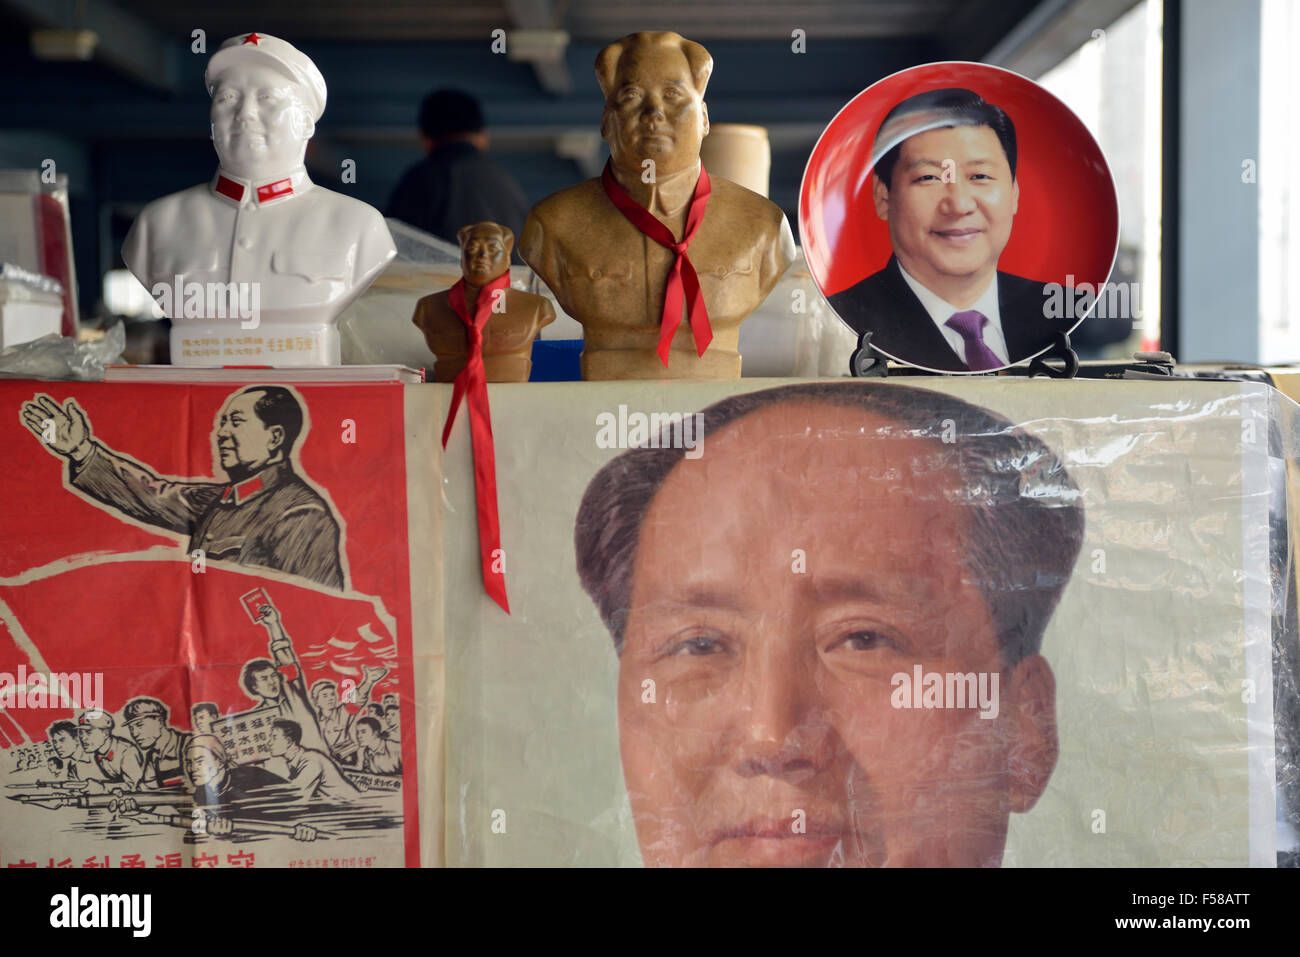 Memorabilia of Chinese president Xi Jinping is on sale with that of Mao Zedong in Panjiayuan flea market in Beijing, Stock Photo